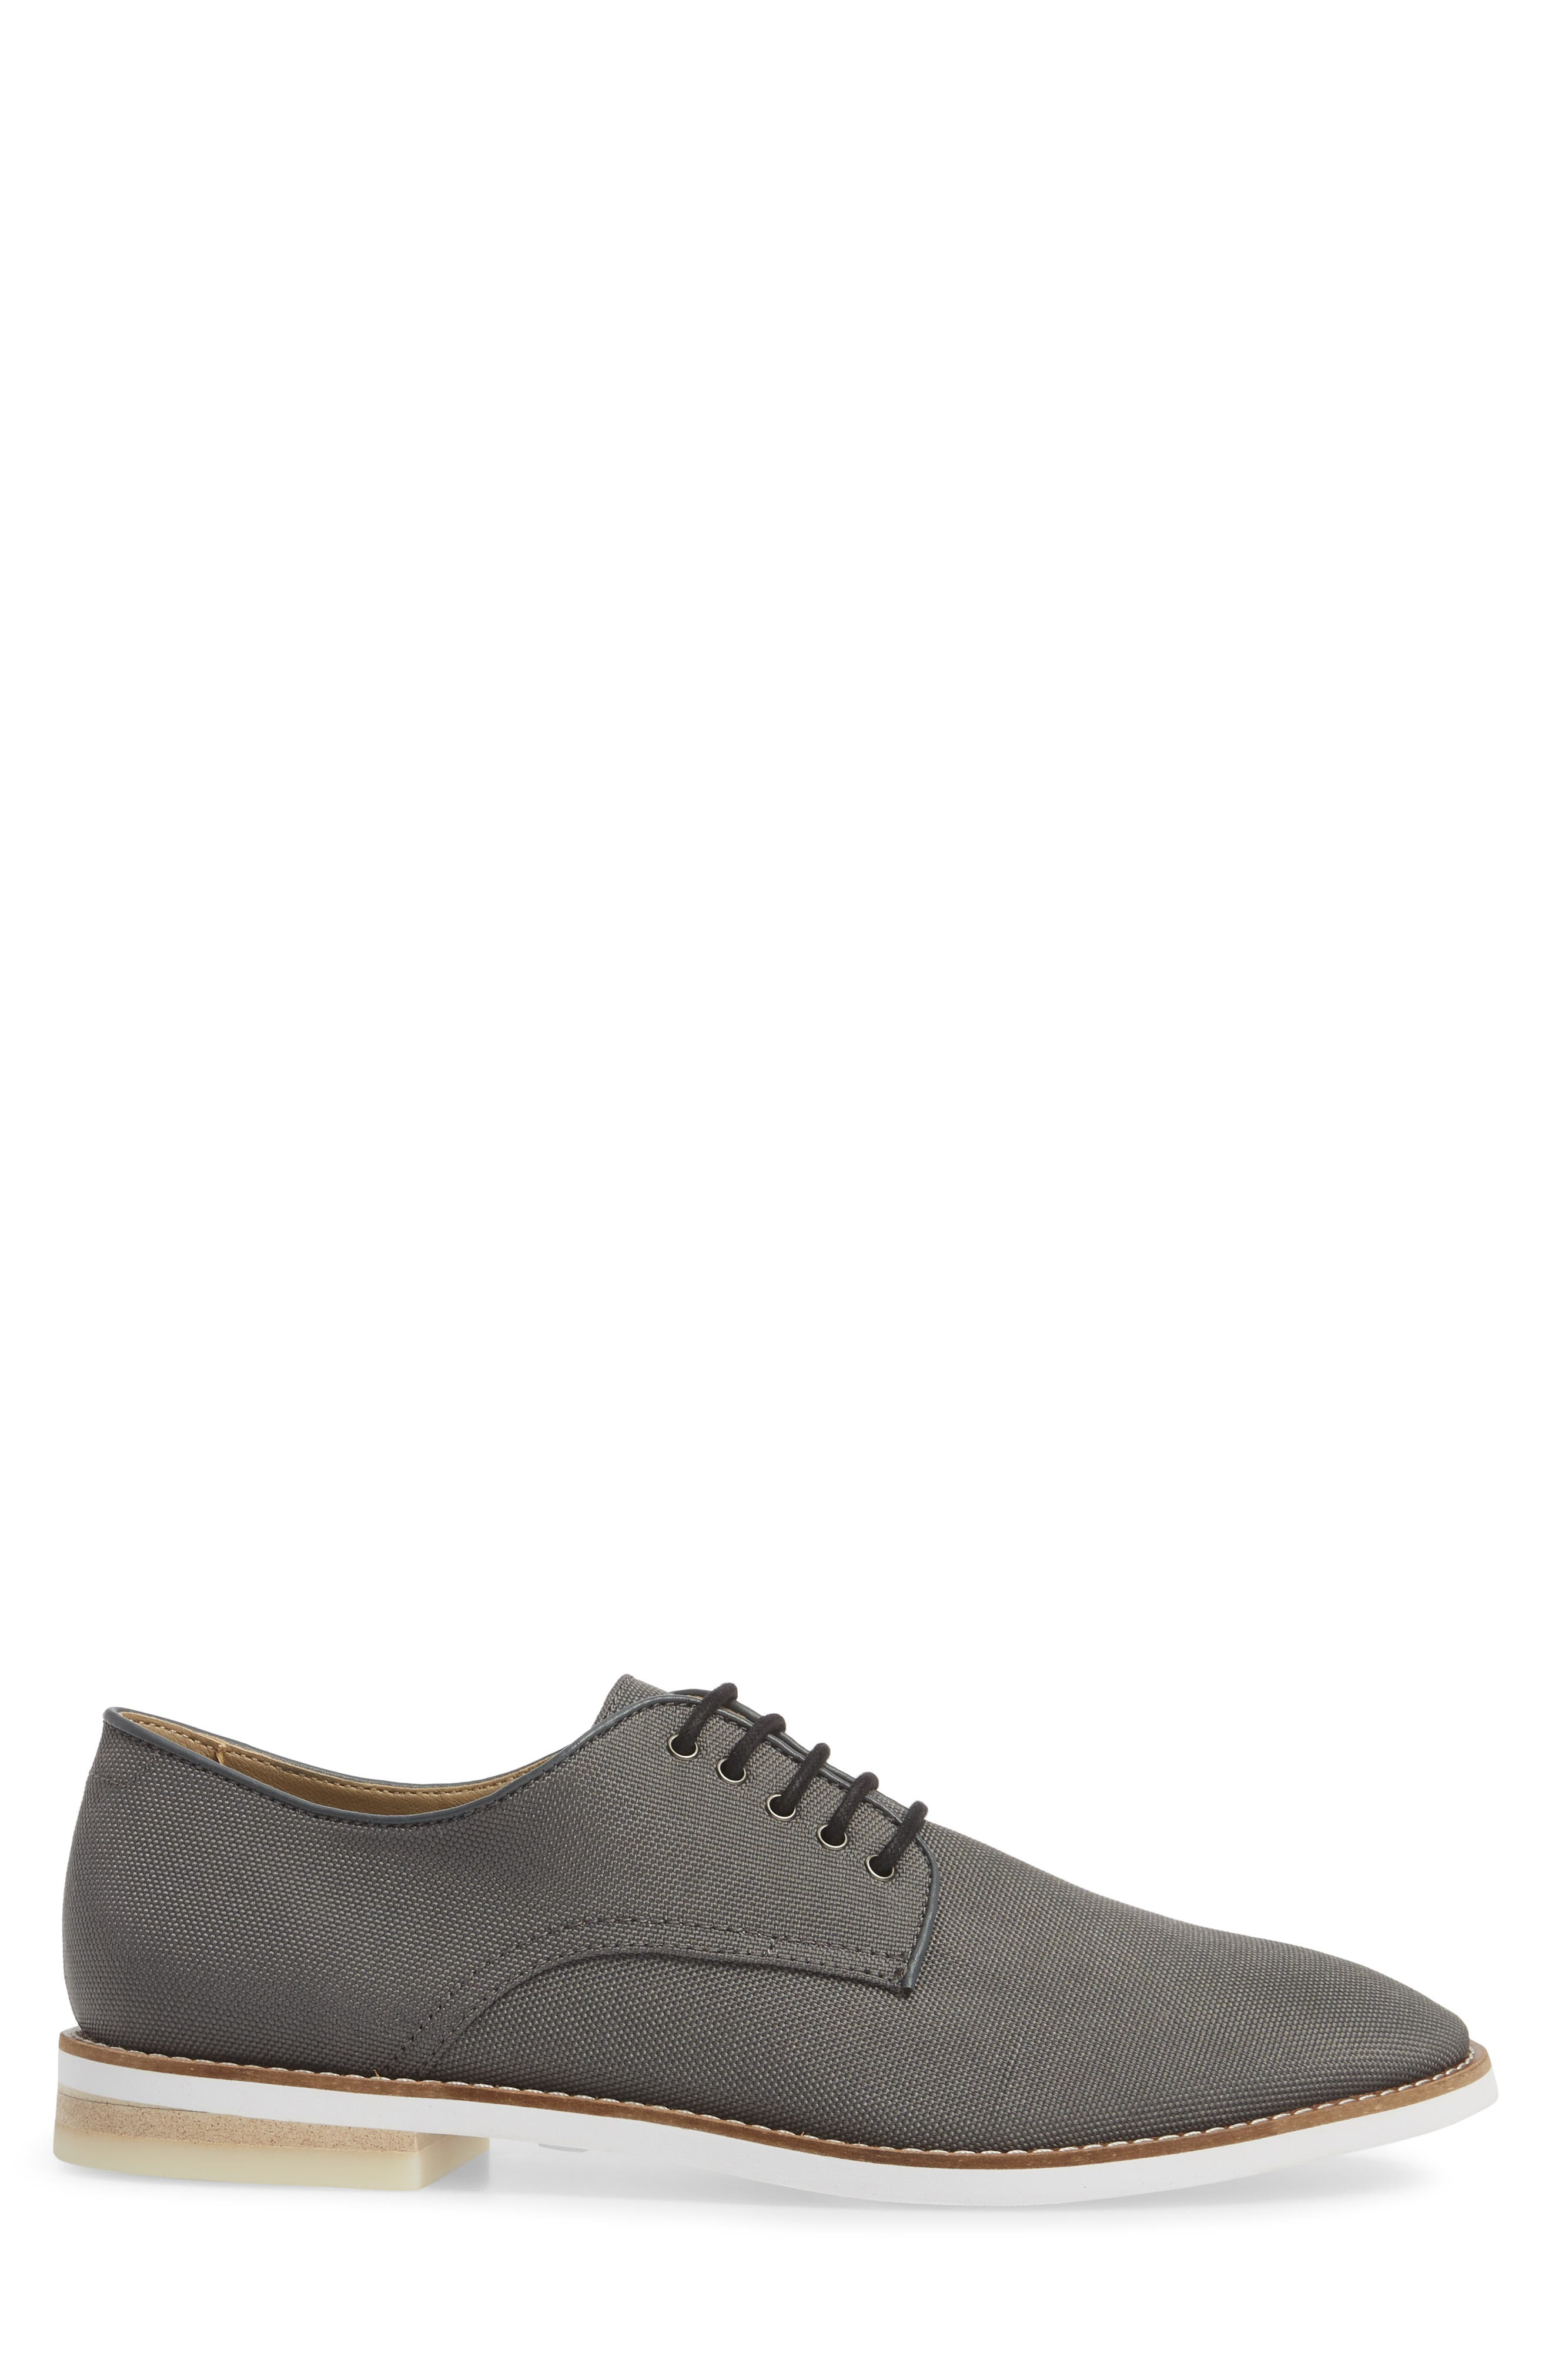 Atlee Plain Toe Derby,                             Alternate thumbnail 3, color,                             GREY SYNTHETIC